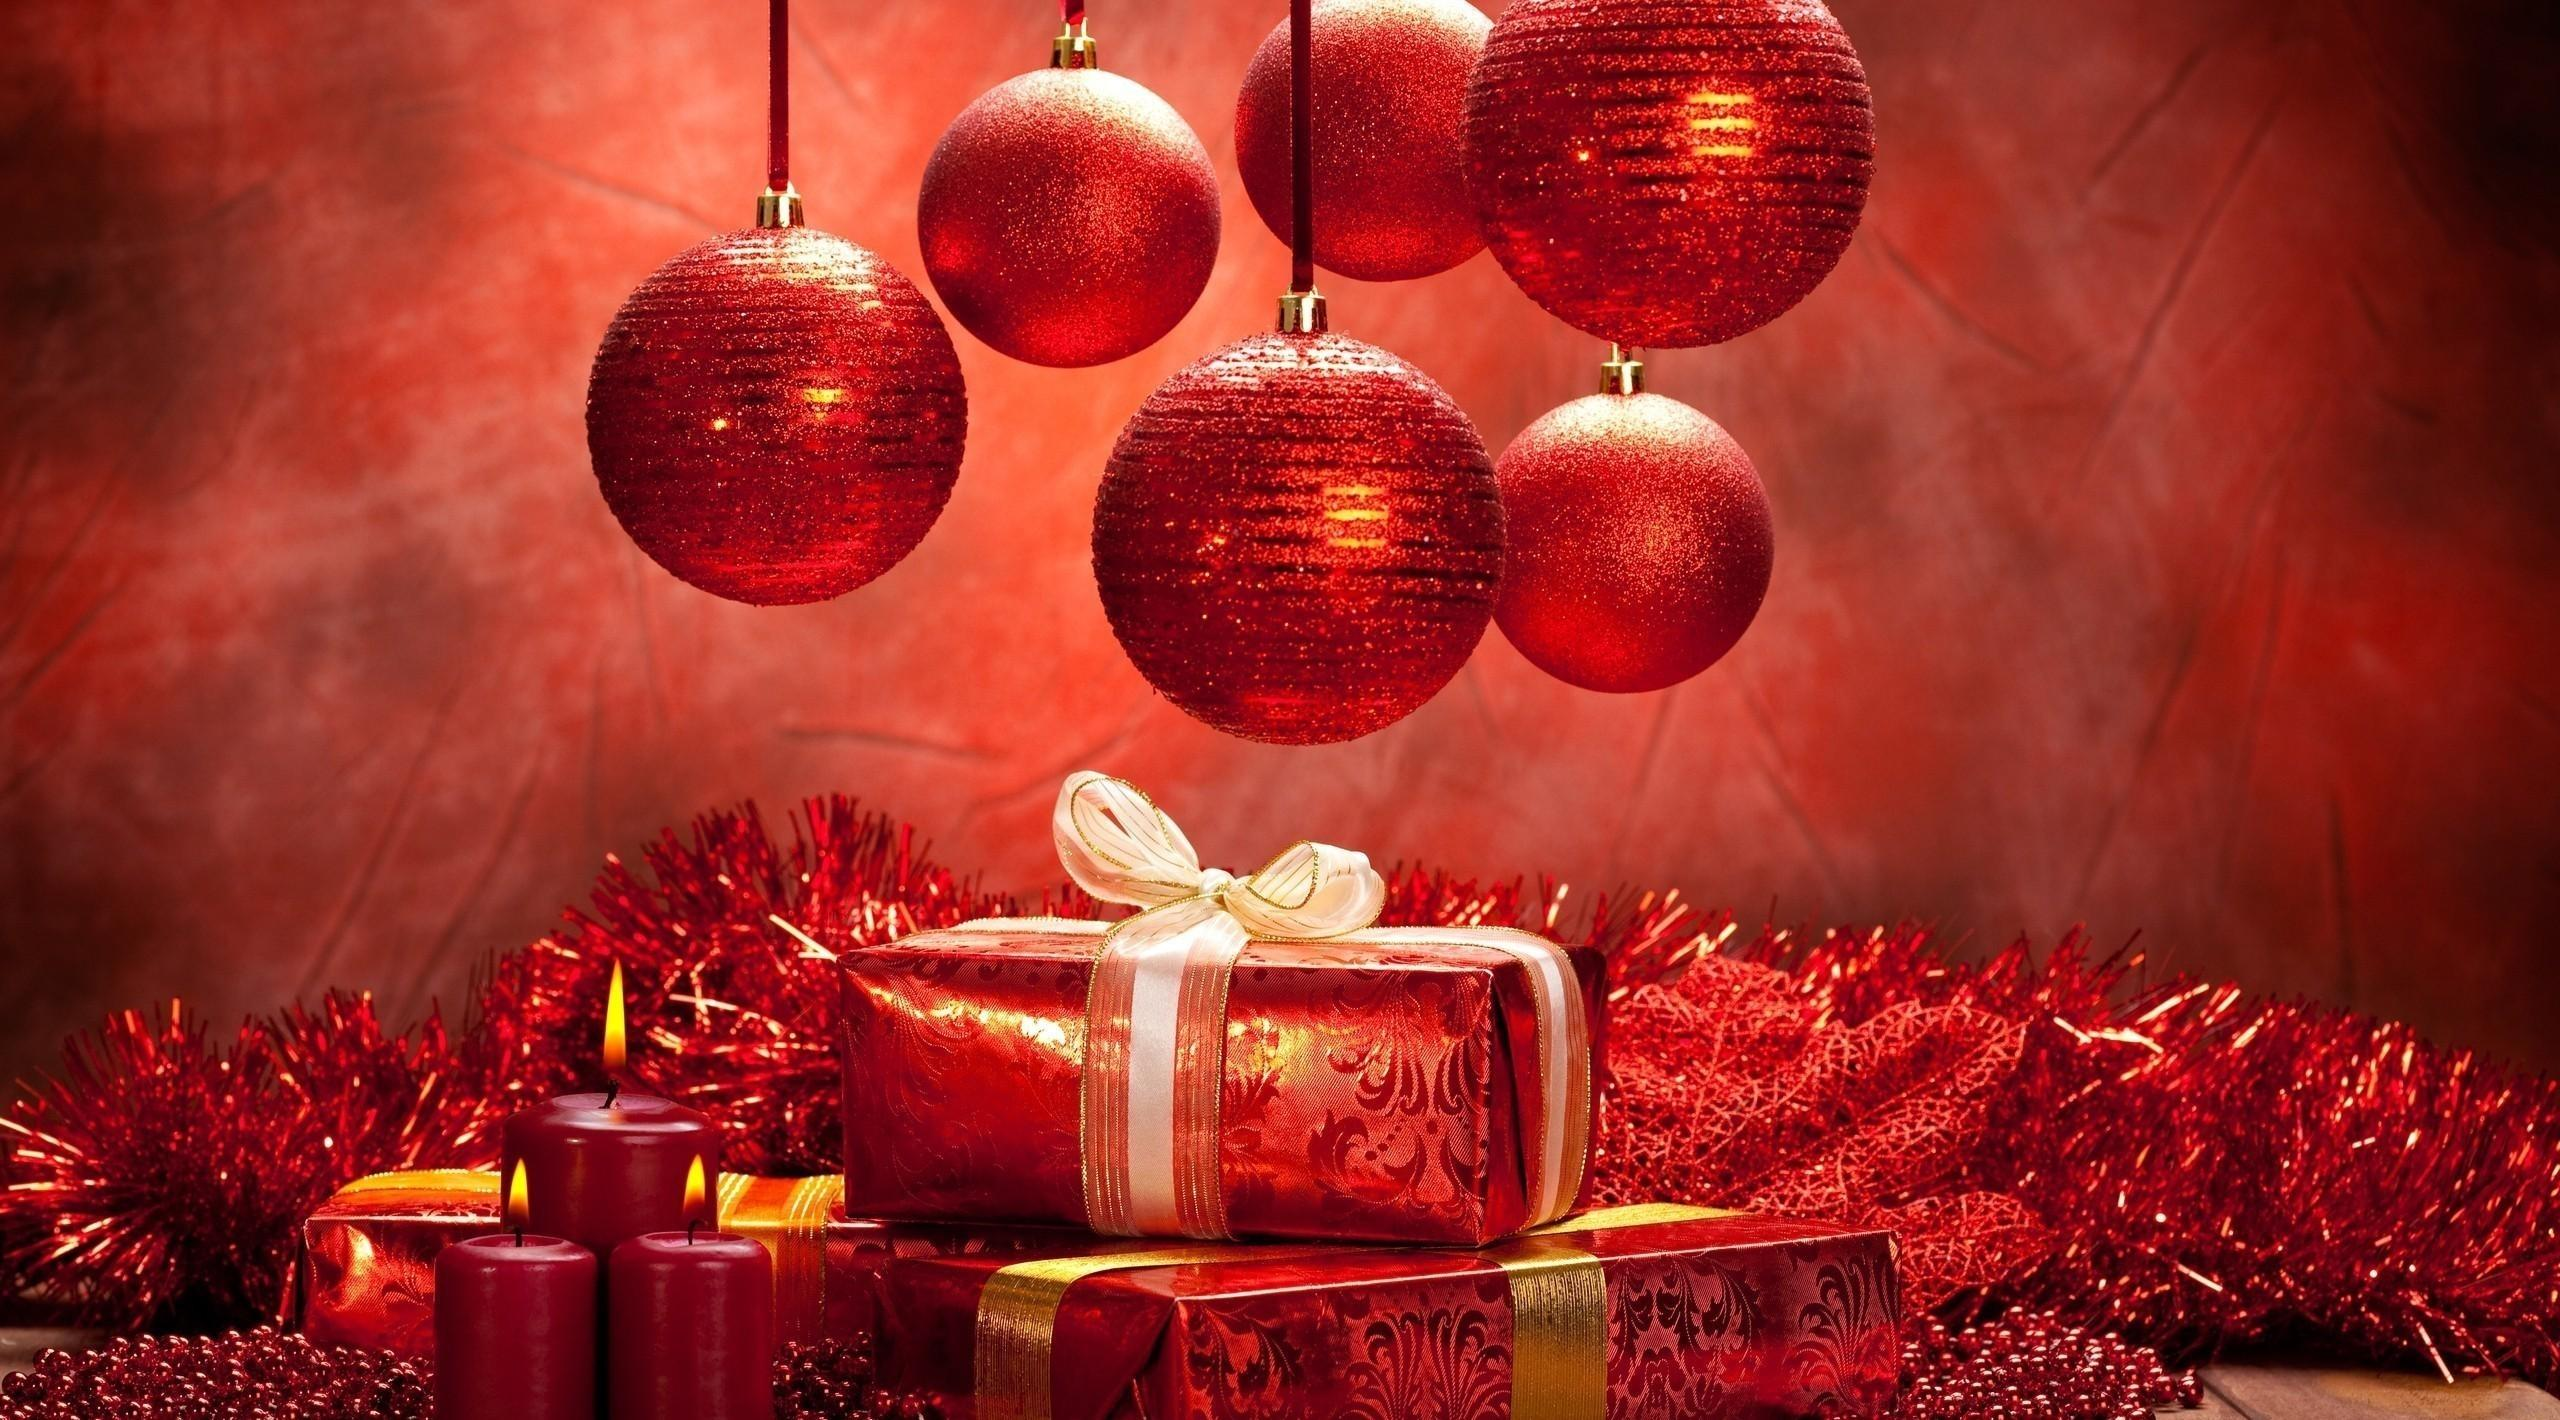 New Year Christmas Christmas Decorations Gifts Candles Mood 36366 2560x1420